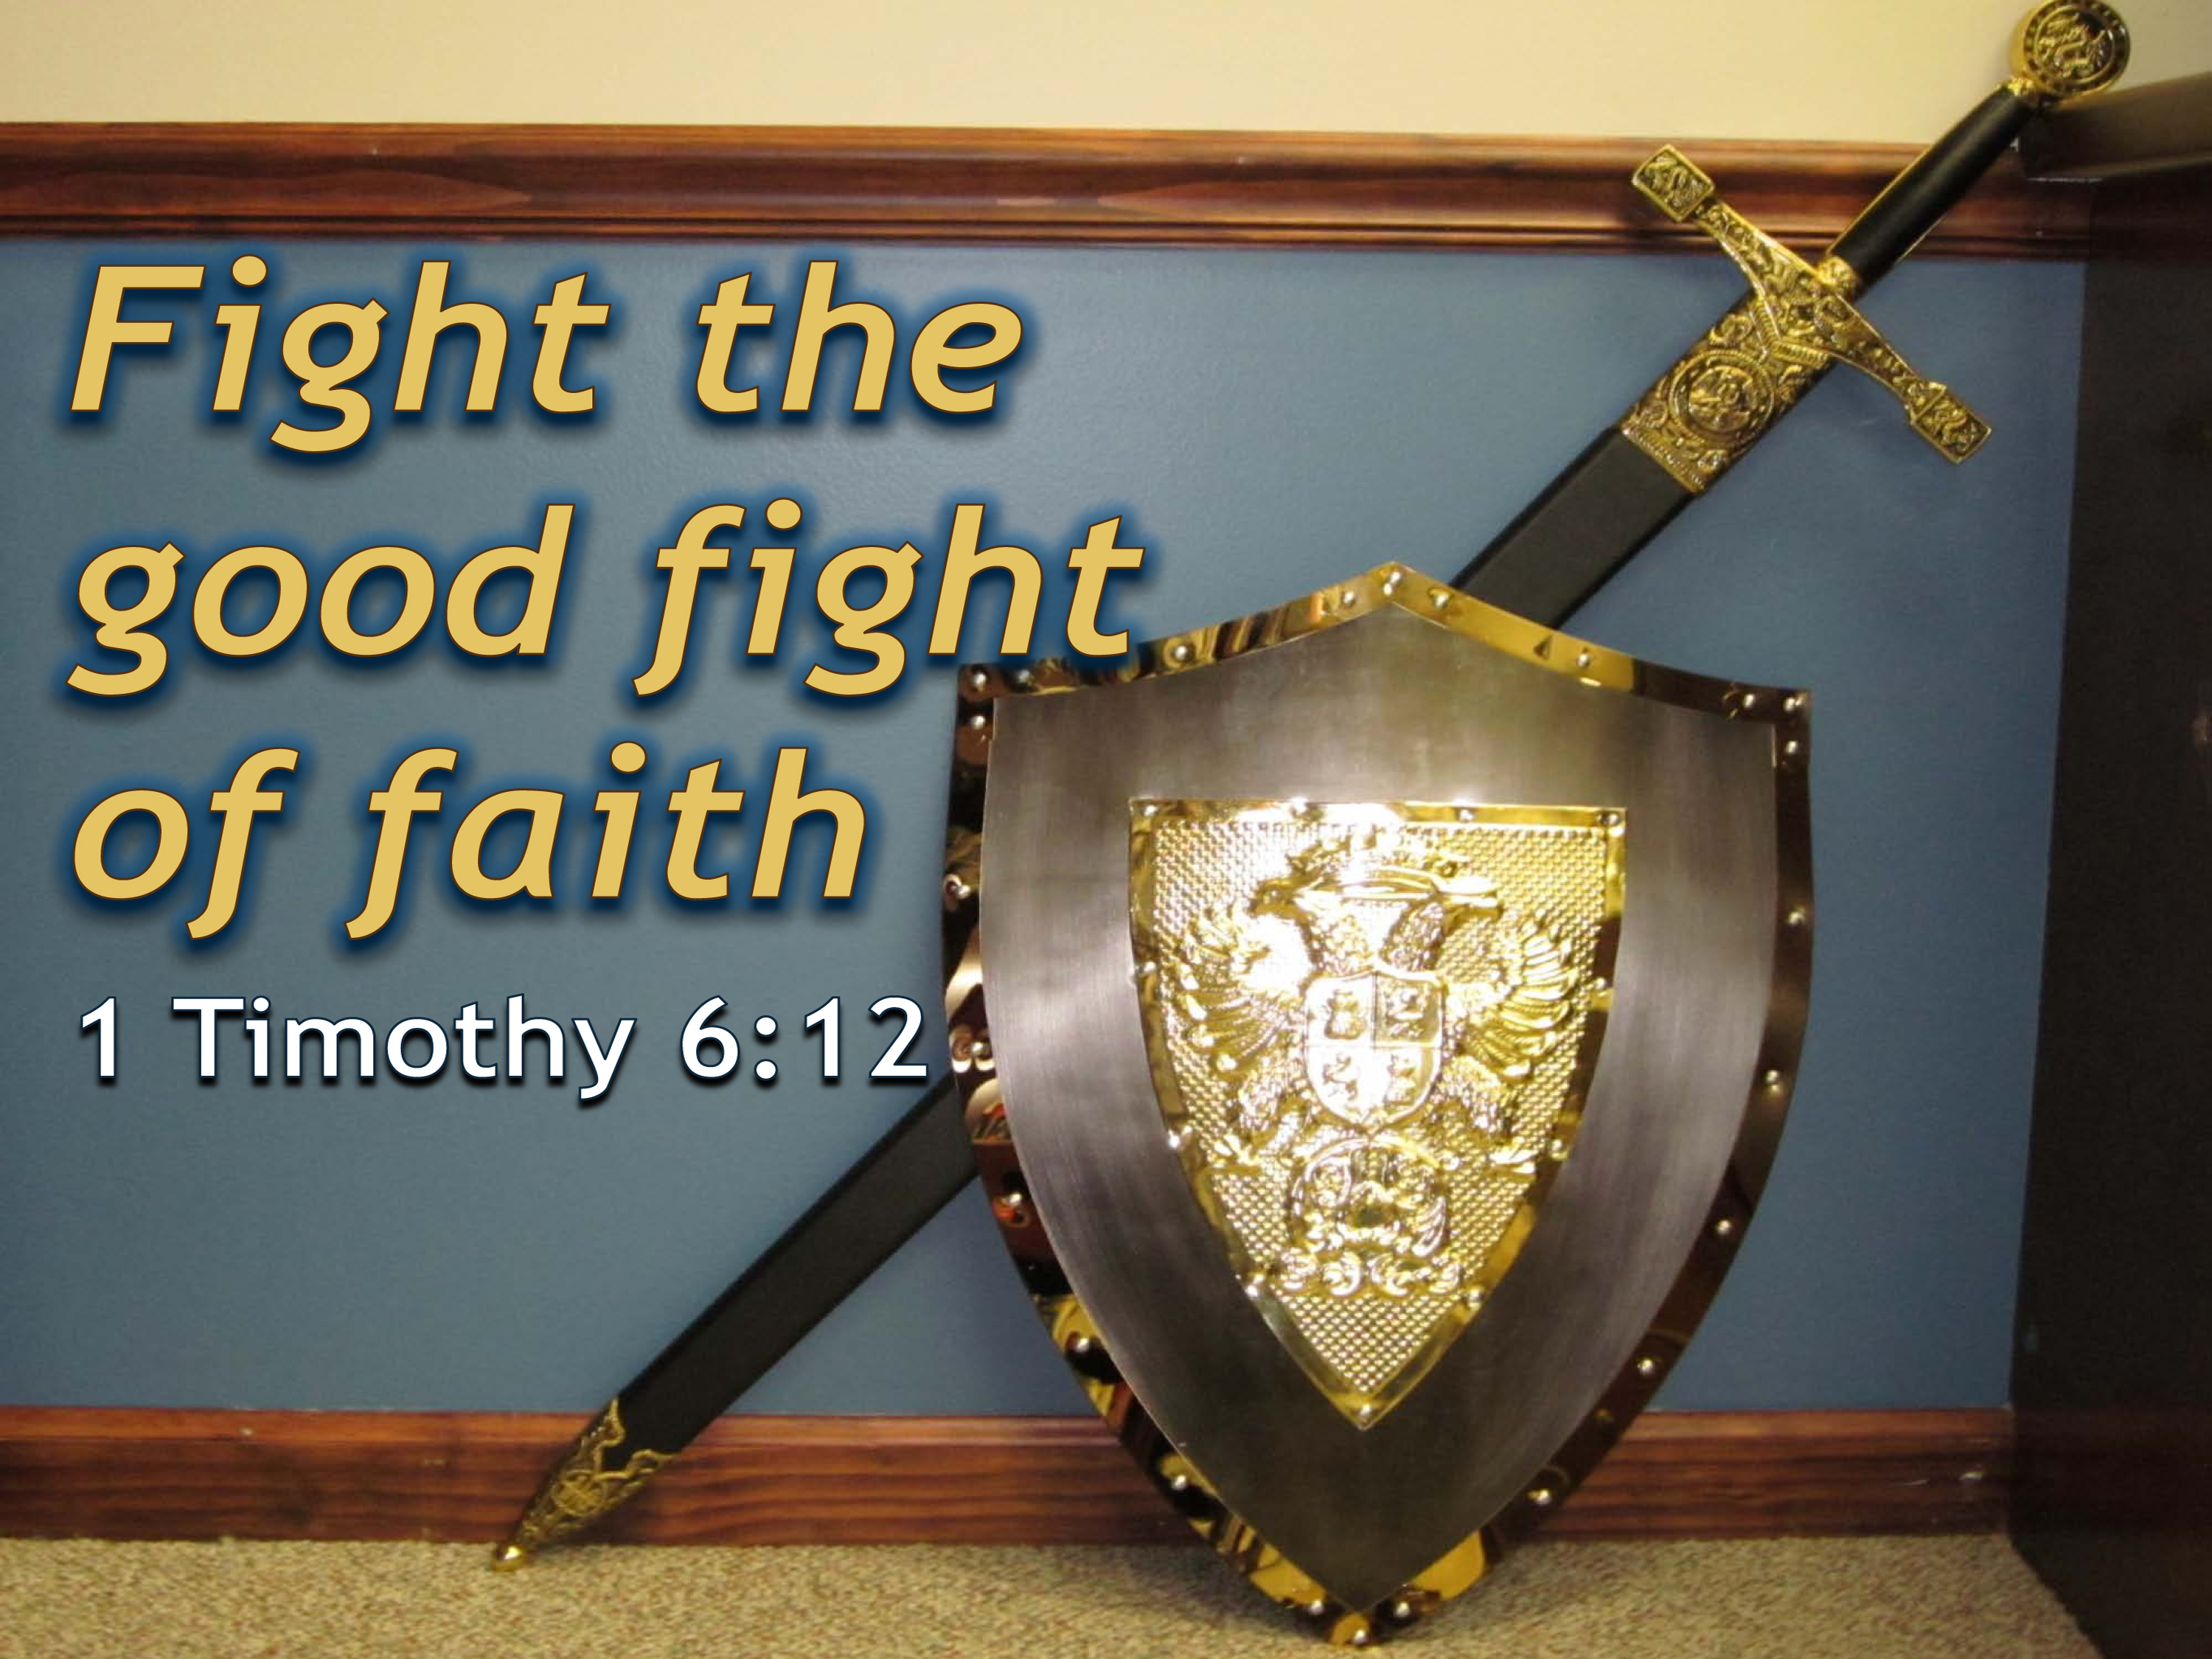 fight-the-good-fight-of-faith-1.jpg